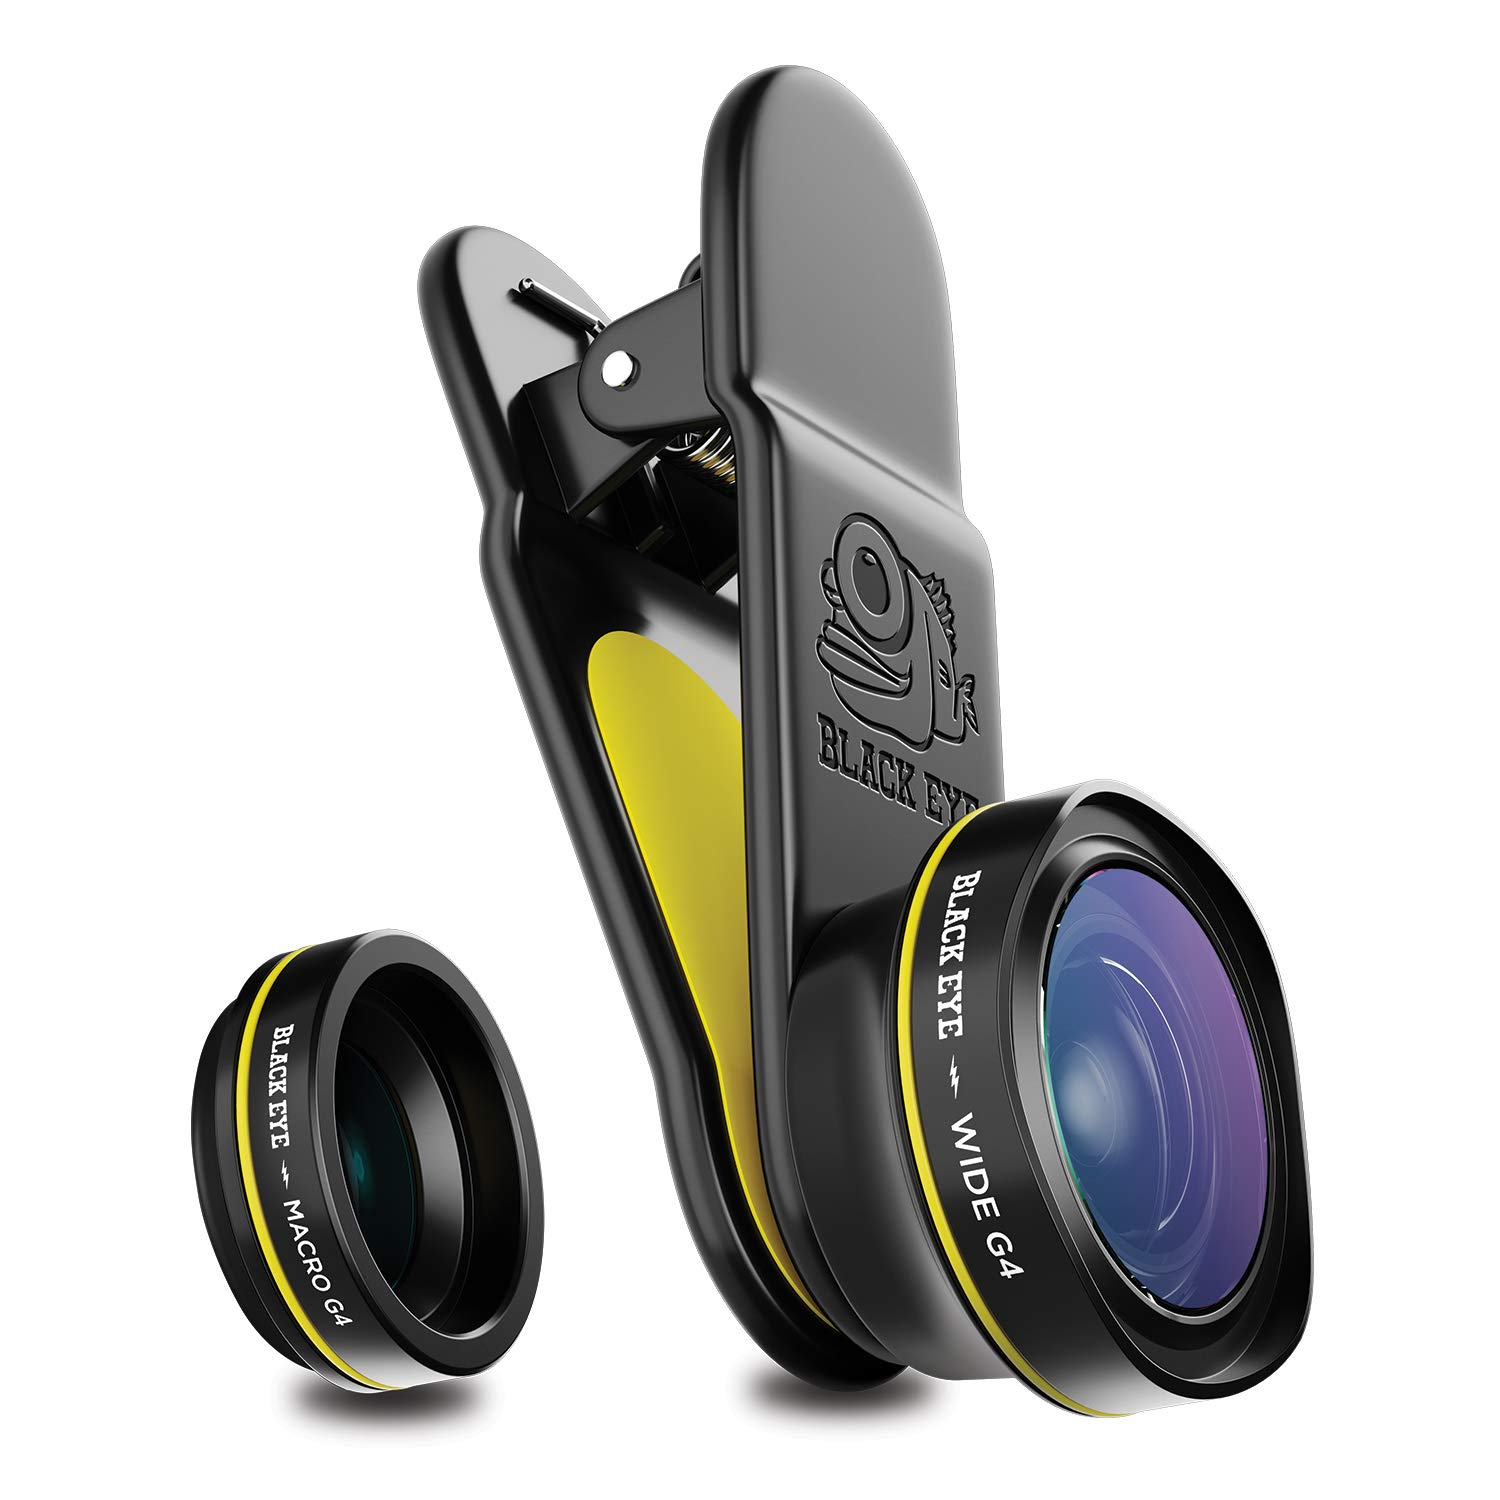 Phone Lenses by Black Eye || Combo G4 (Wide + Macro) Clip-on Lens Compatible with iPhone, iPad, Samsung Galaxy, and All Camera Phone Models